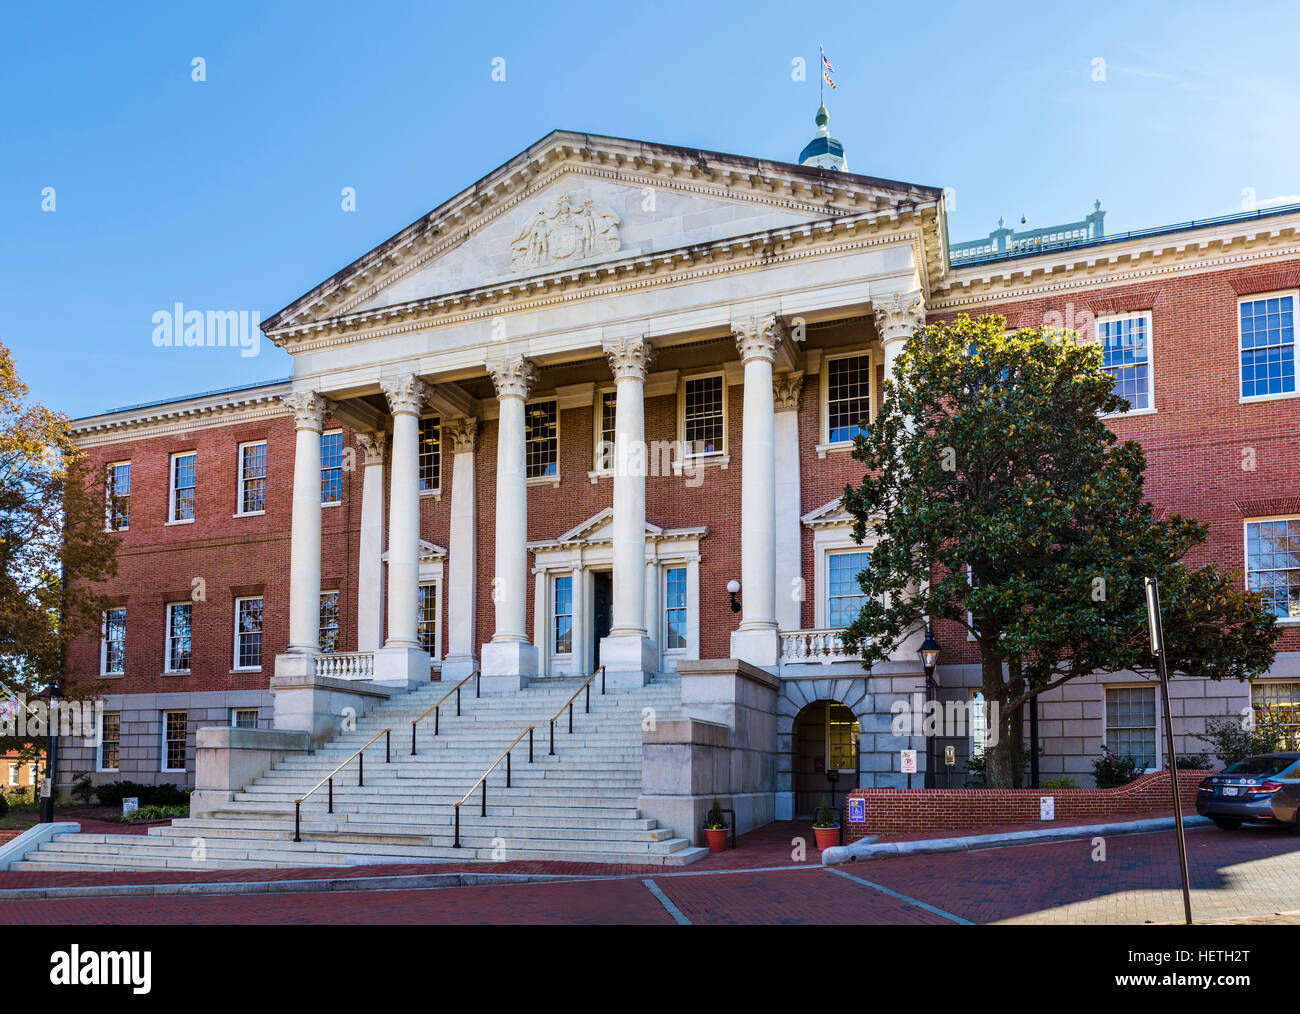 Maryland State House, Annapolis, Maryland, USA Photo Stock